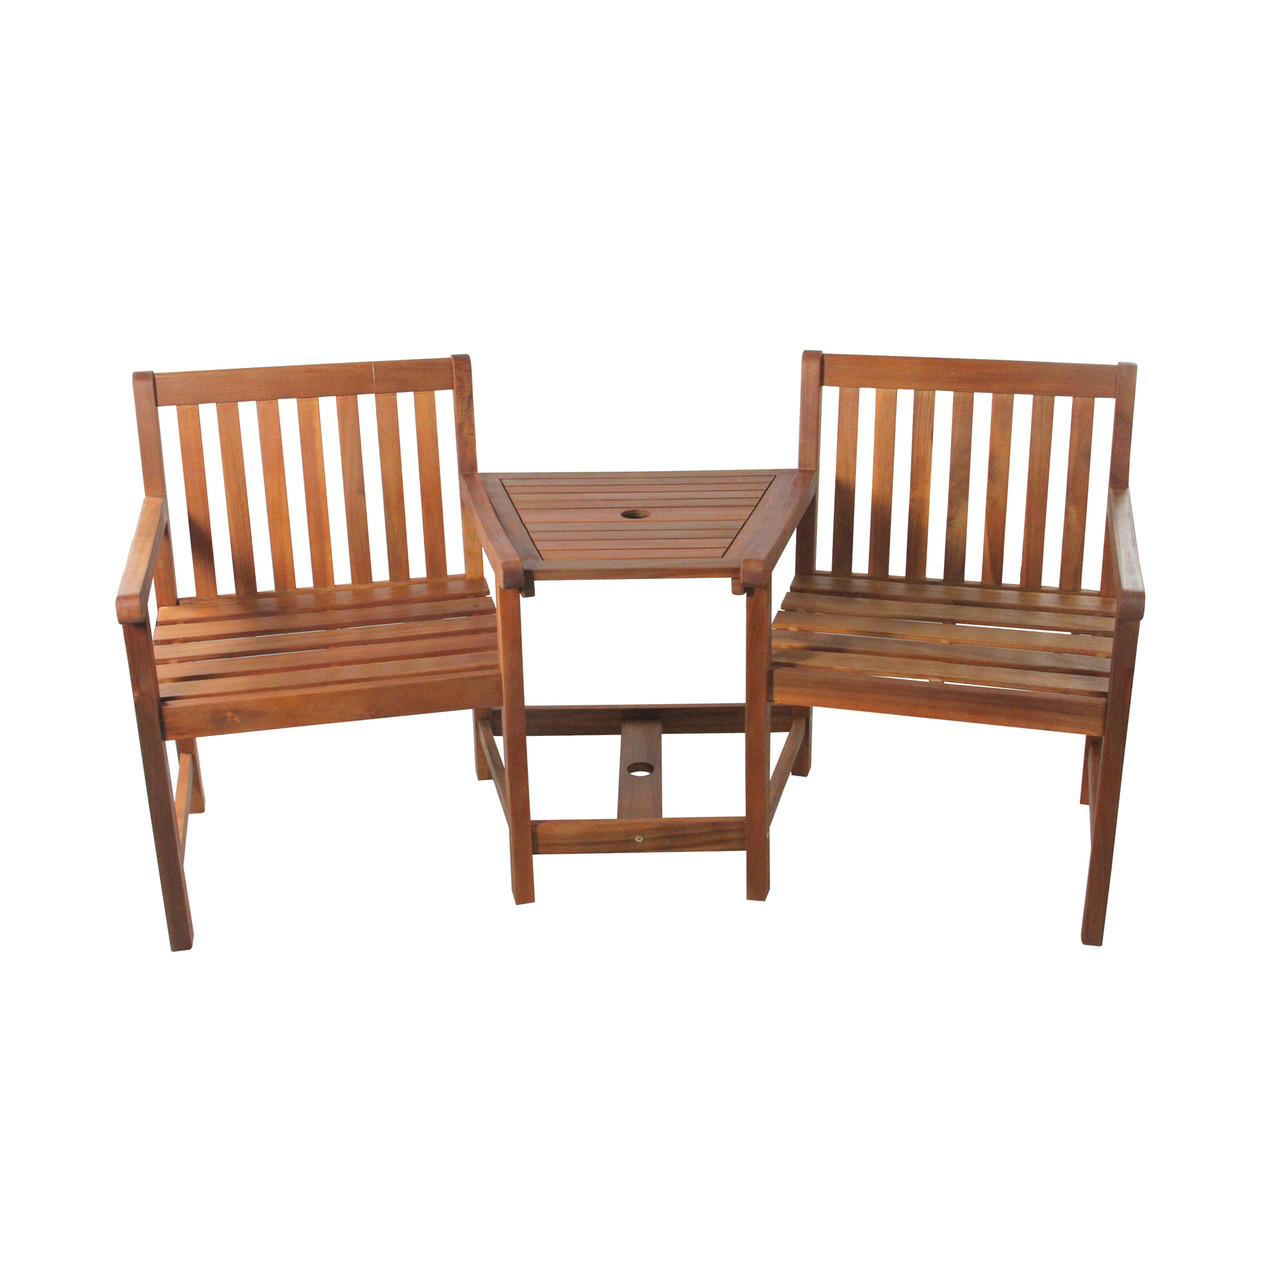 Magnificent 70 Brown Acacia Wood Jack And Jill Chair With Table Outdoor Patio Set 32825339 Lamtechconsult Wood Chair Design Ideas Lamtechconsultcom